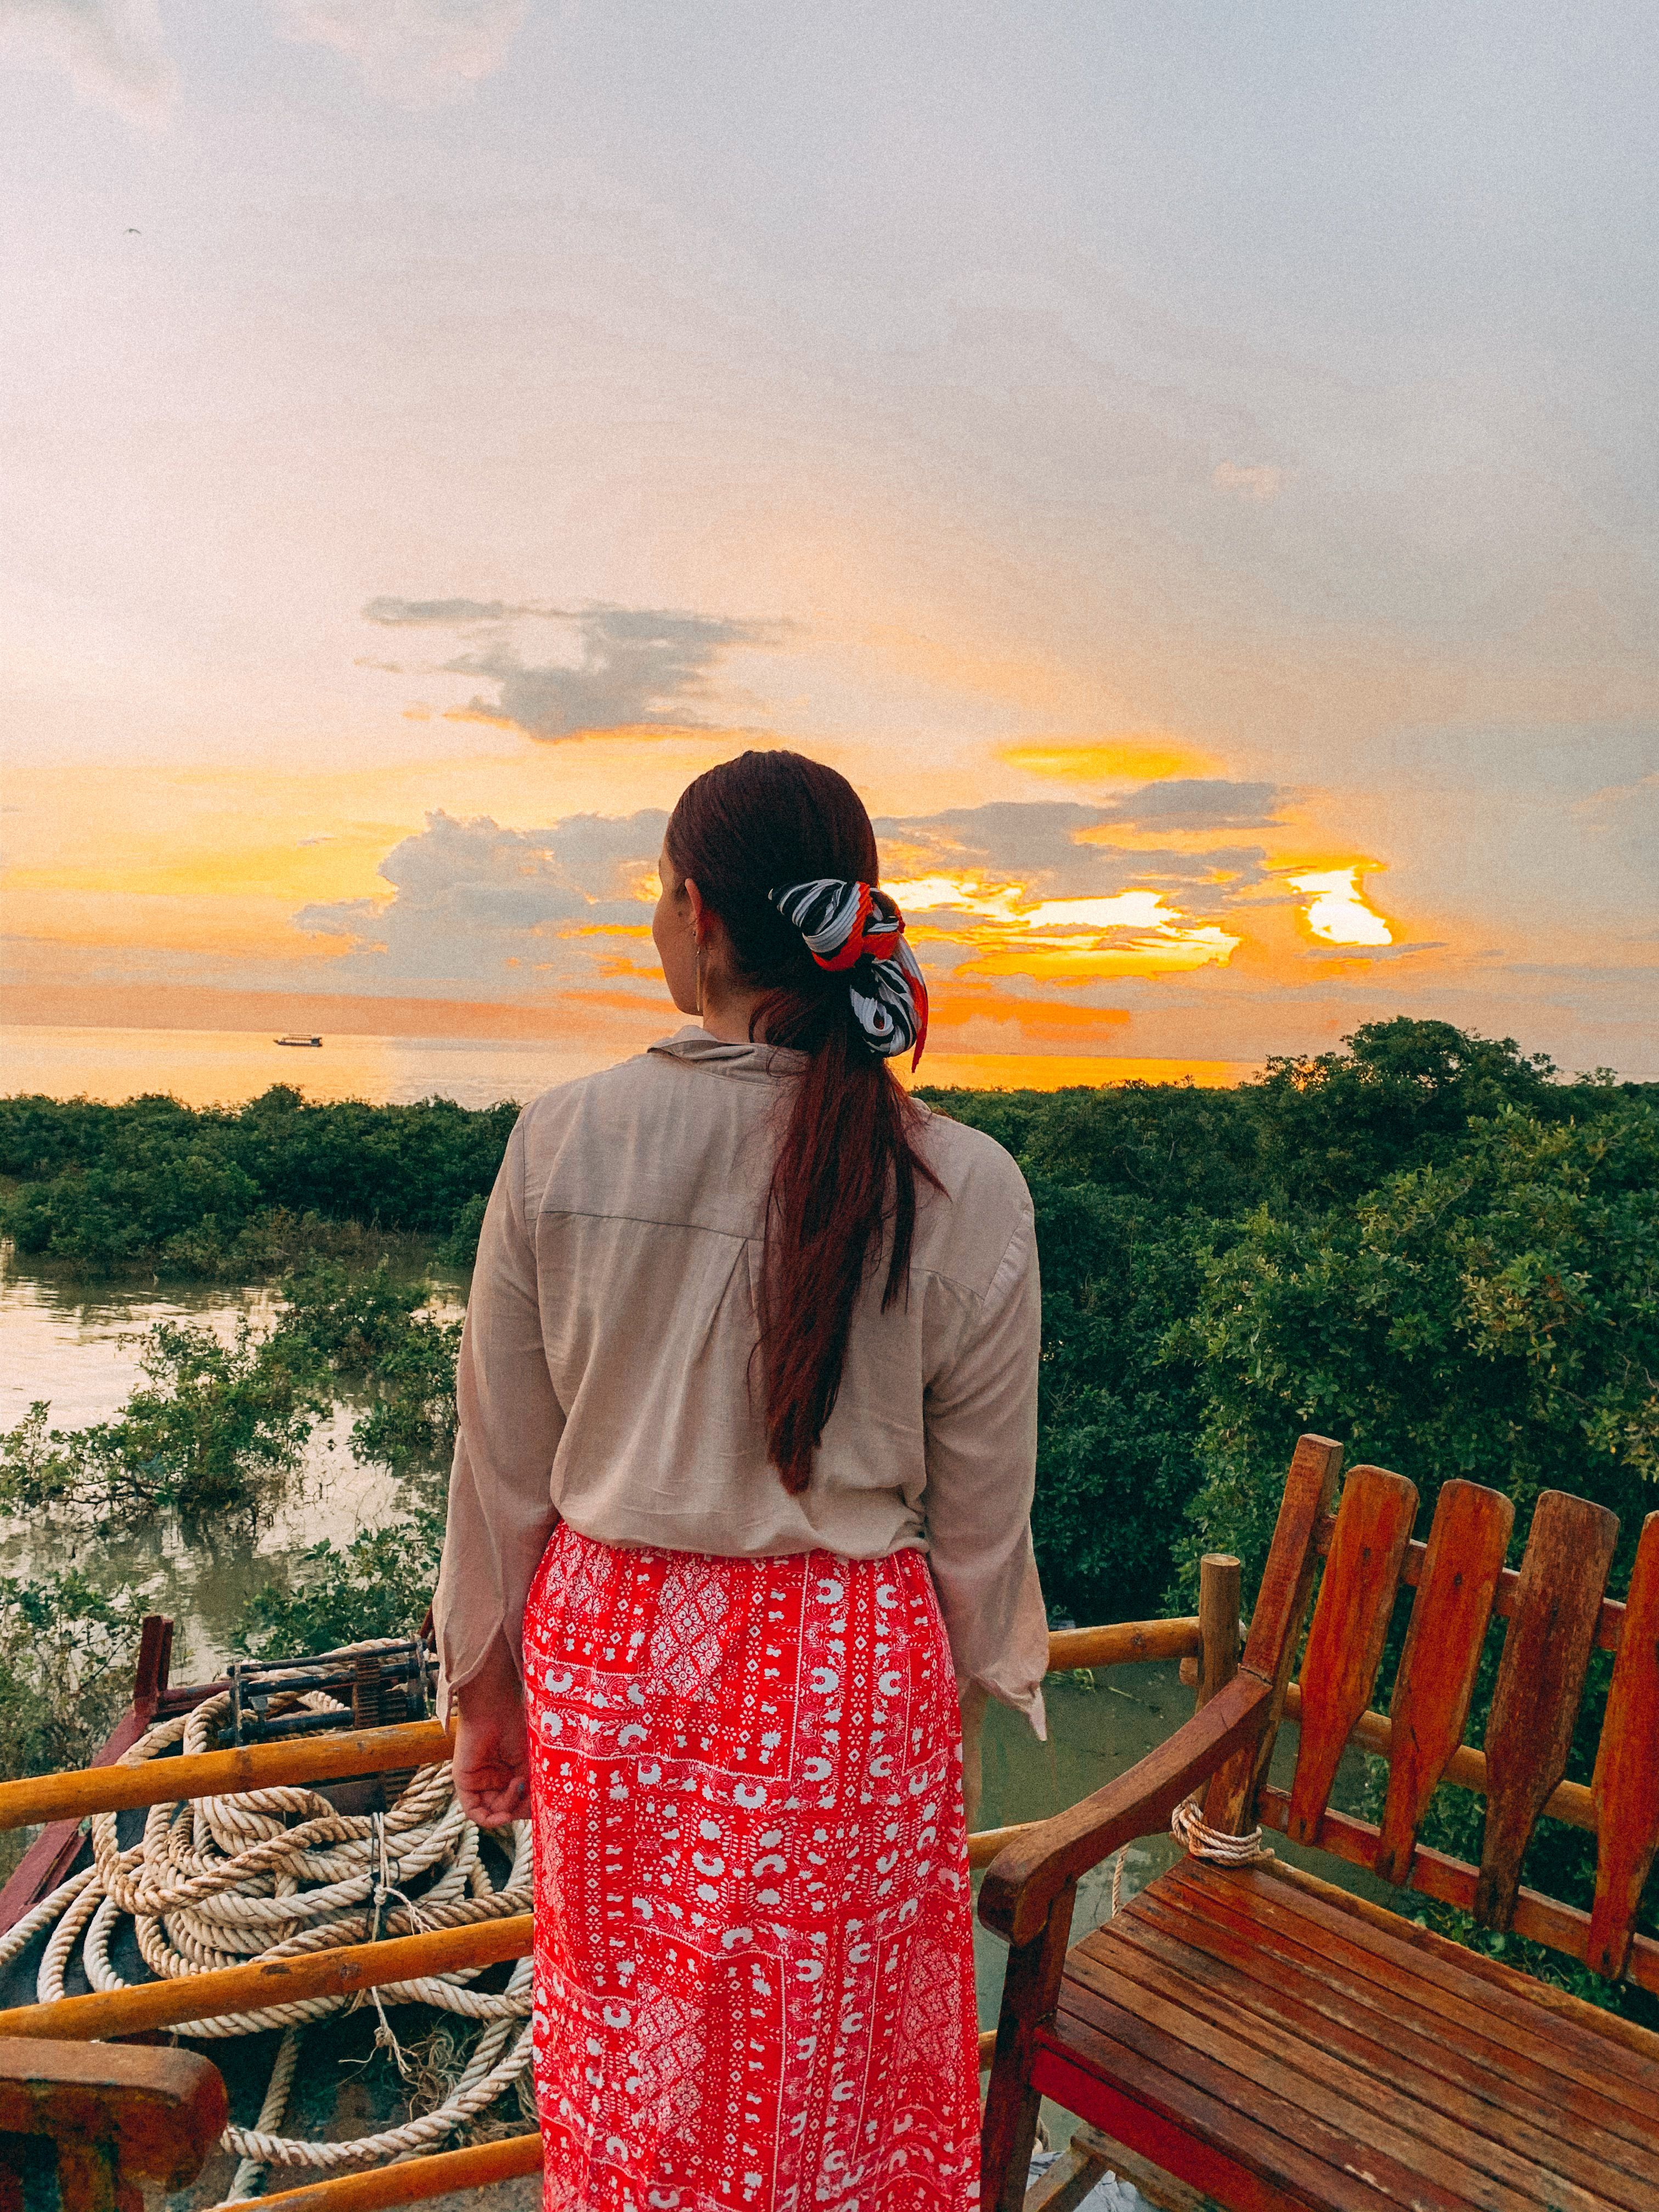 Your ultimate itinerary for Siem Reap, Cambodia! This is the best 5 day Siem Reap itinerary that you need to steal, with everything you need to know about travel in Siem Reap! #southeastasia #cambodia #siemreap